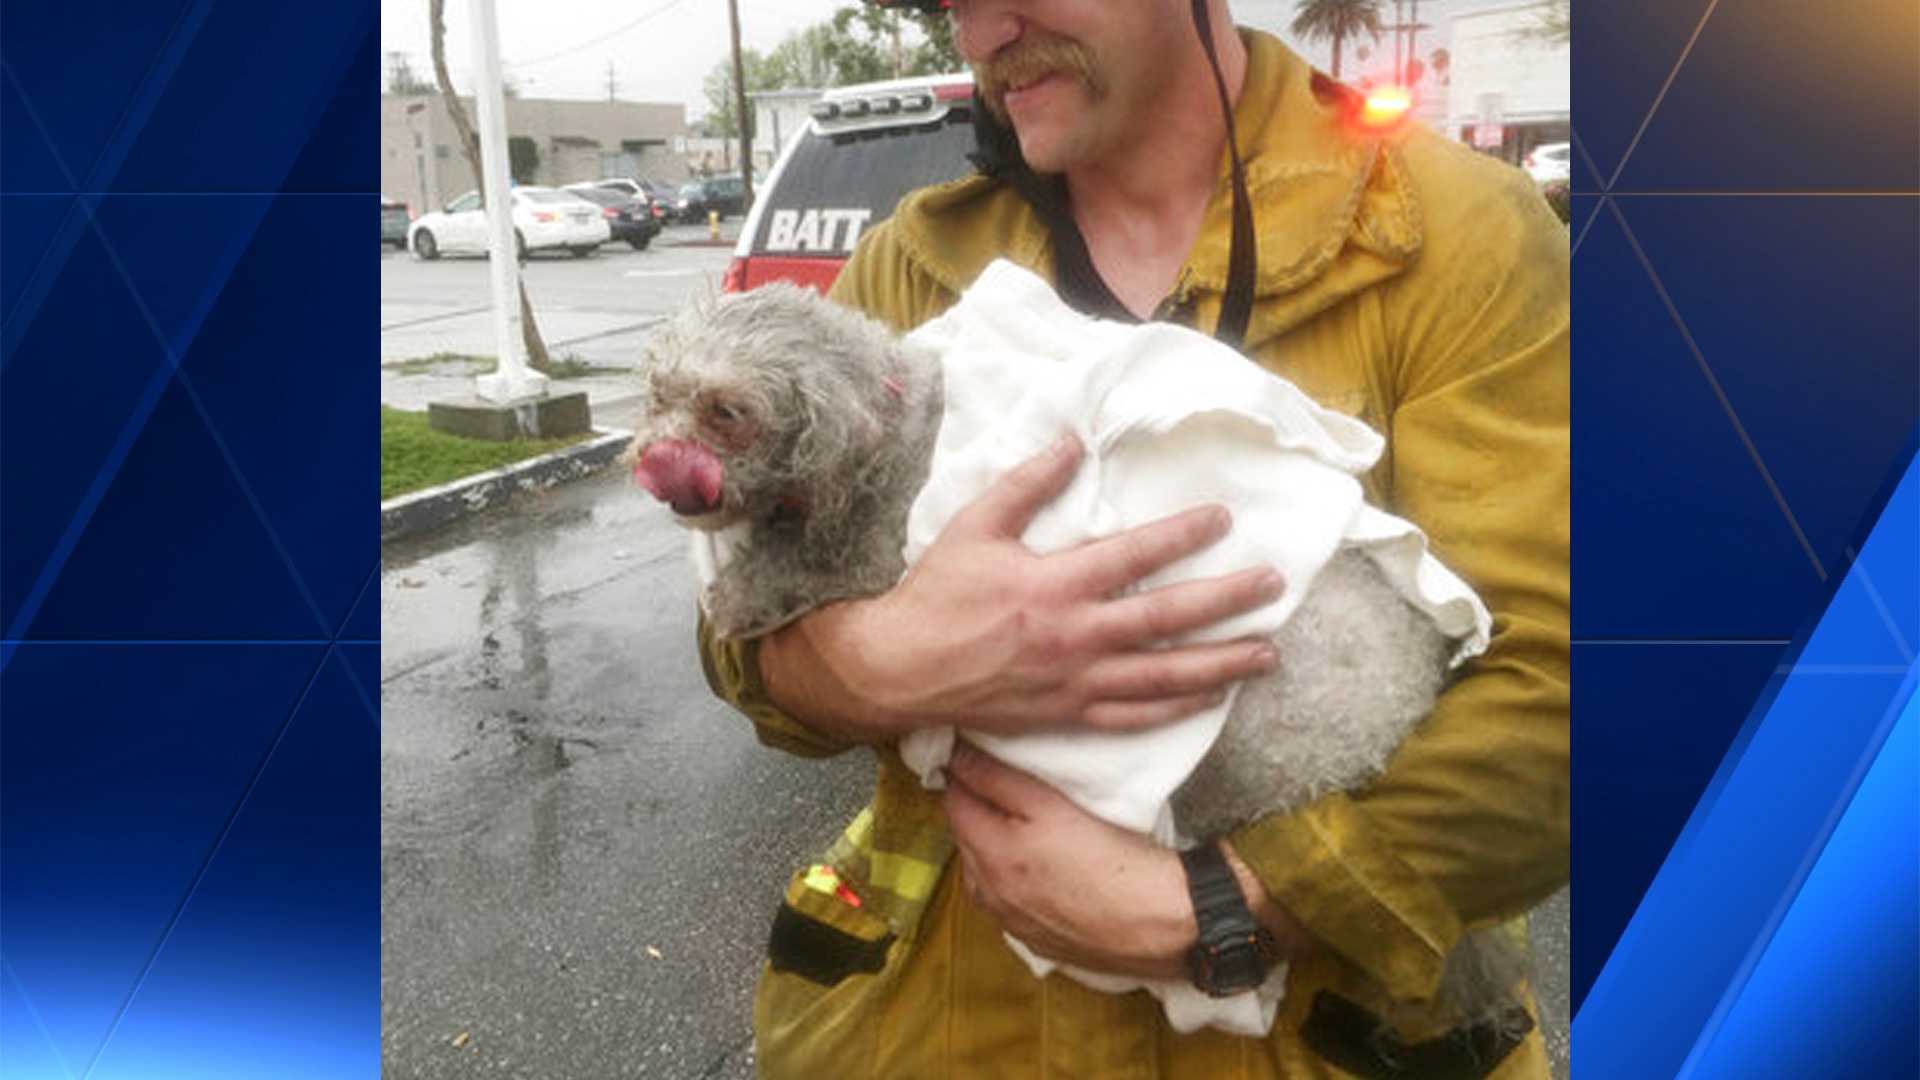 In this Tuesday, March 21, 2017 photo provided by Crystal Lamirande, Santa Monica firefighter Andrew Klein holding her dog, Nalu, in Santa Monica, Calif. Klein spent minutes giving mouth-to-snout resuscitation to the dog, who was pulled from a burning apartment. The pooch spent the next 24 hours in an oxygen chamber and is doing well.